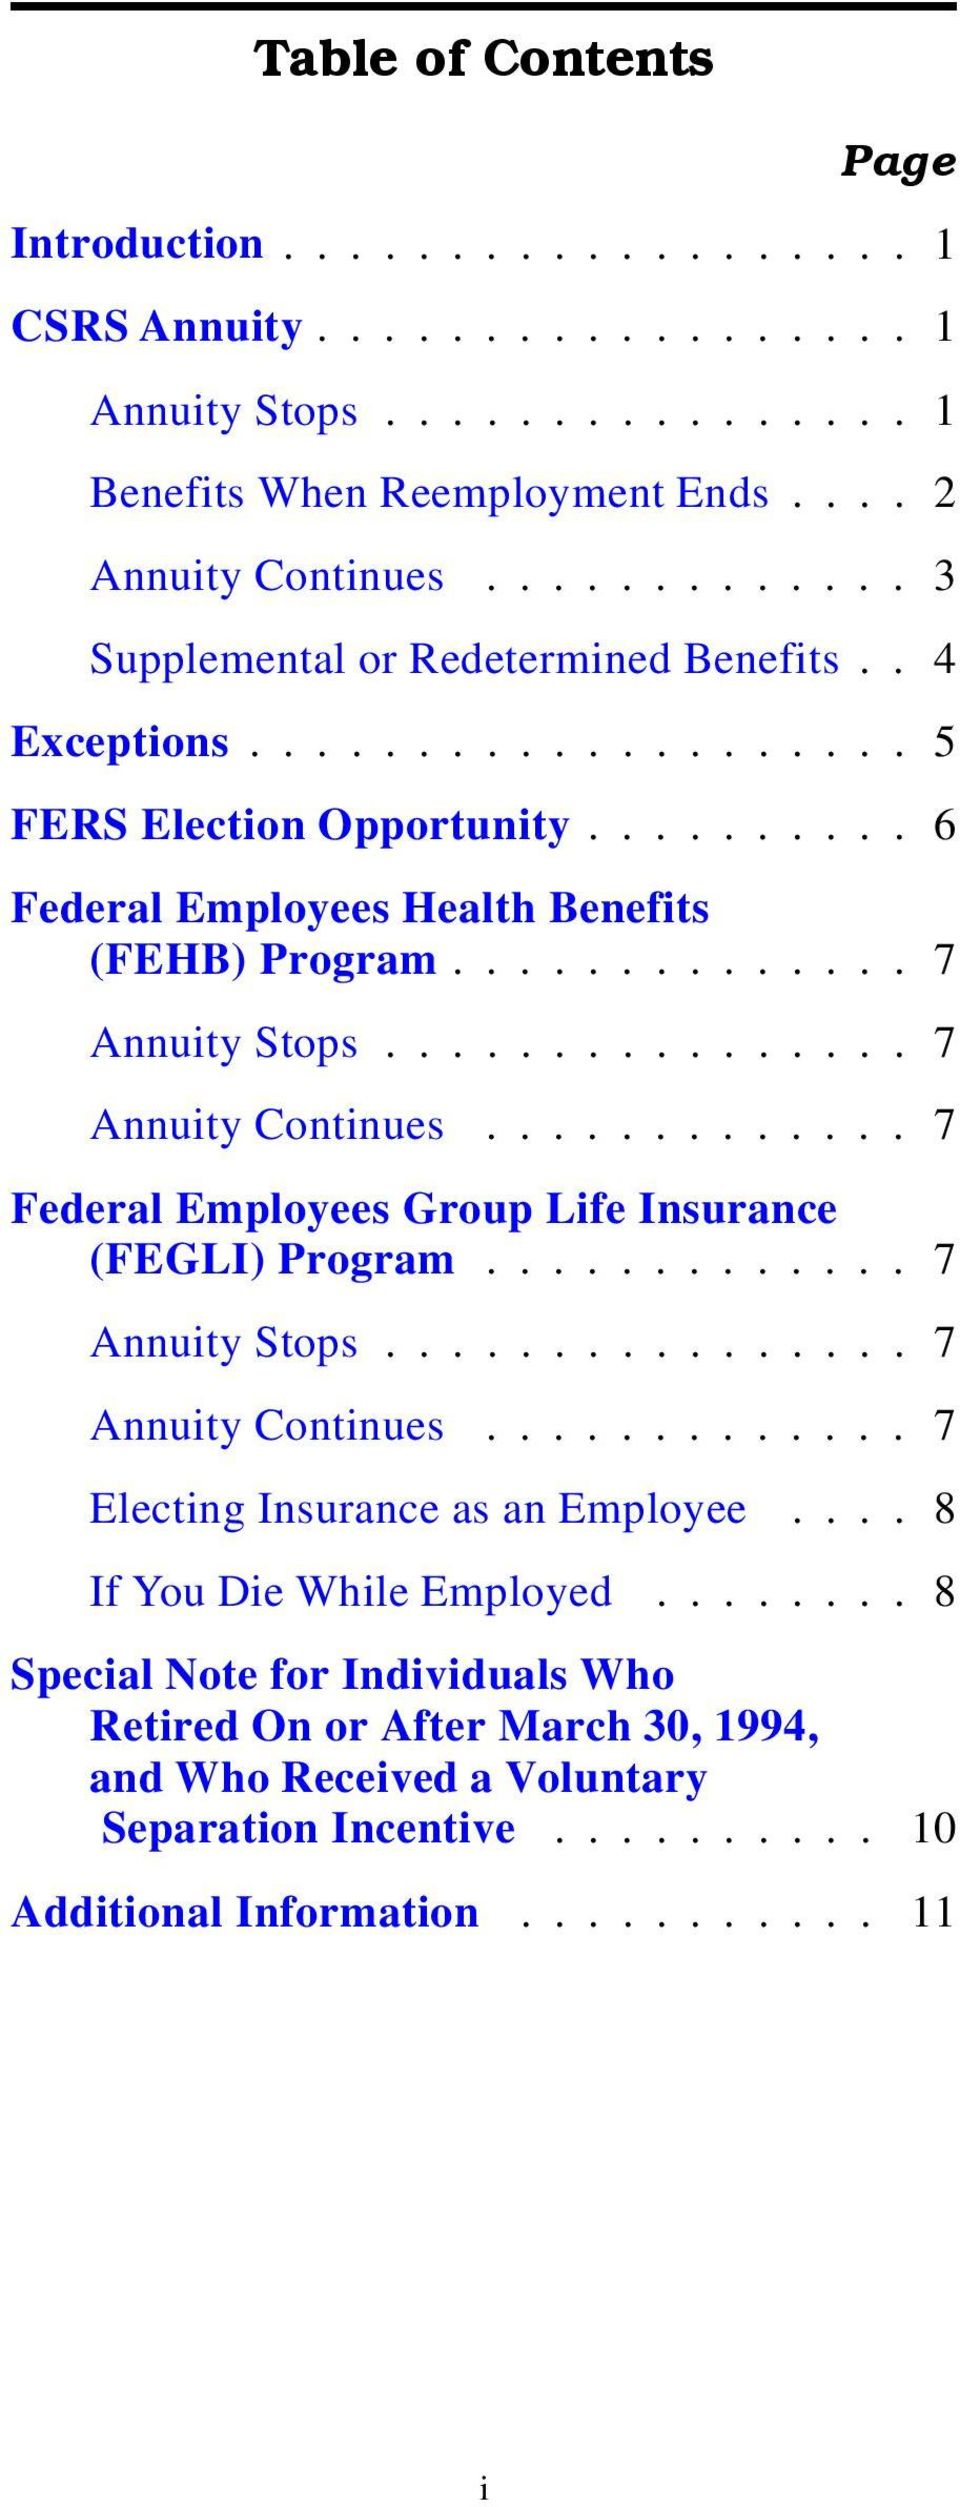 ............... 7 Annuity Continues............. 7 Federal Employees Group Life Insurance (FEGLI) Program............. 7 Annuity Stops................ 7 Annuity Continues............. 7 Electing Insurance as an Employee.